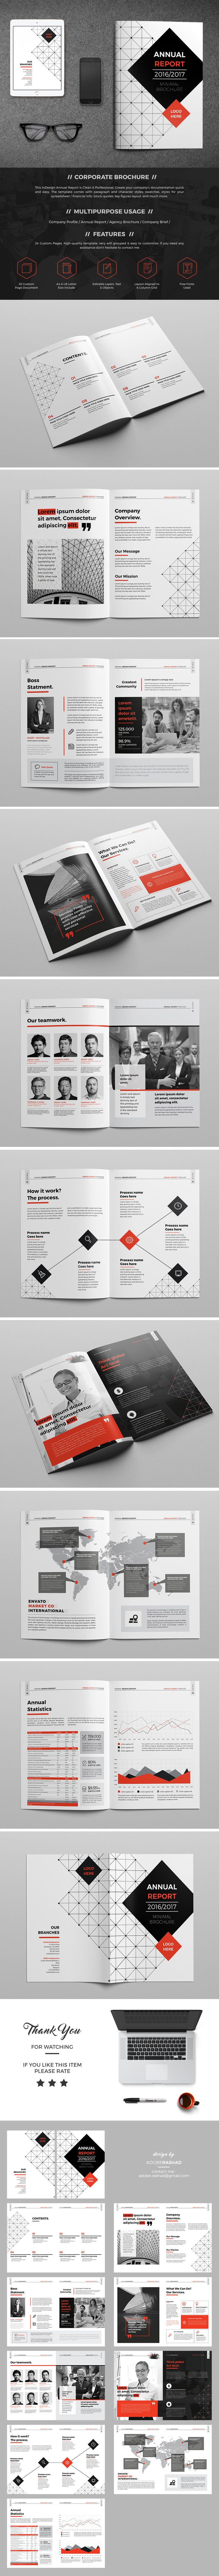 This InDesign Brochure is Clean & Professional. Create your company's documentation quick and easy. The template comes with paragraph and character styles, swatches, styles for your spreadsheet / financial info, block quotes, key figures layout, and much …